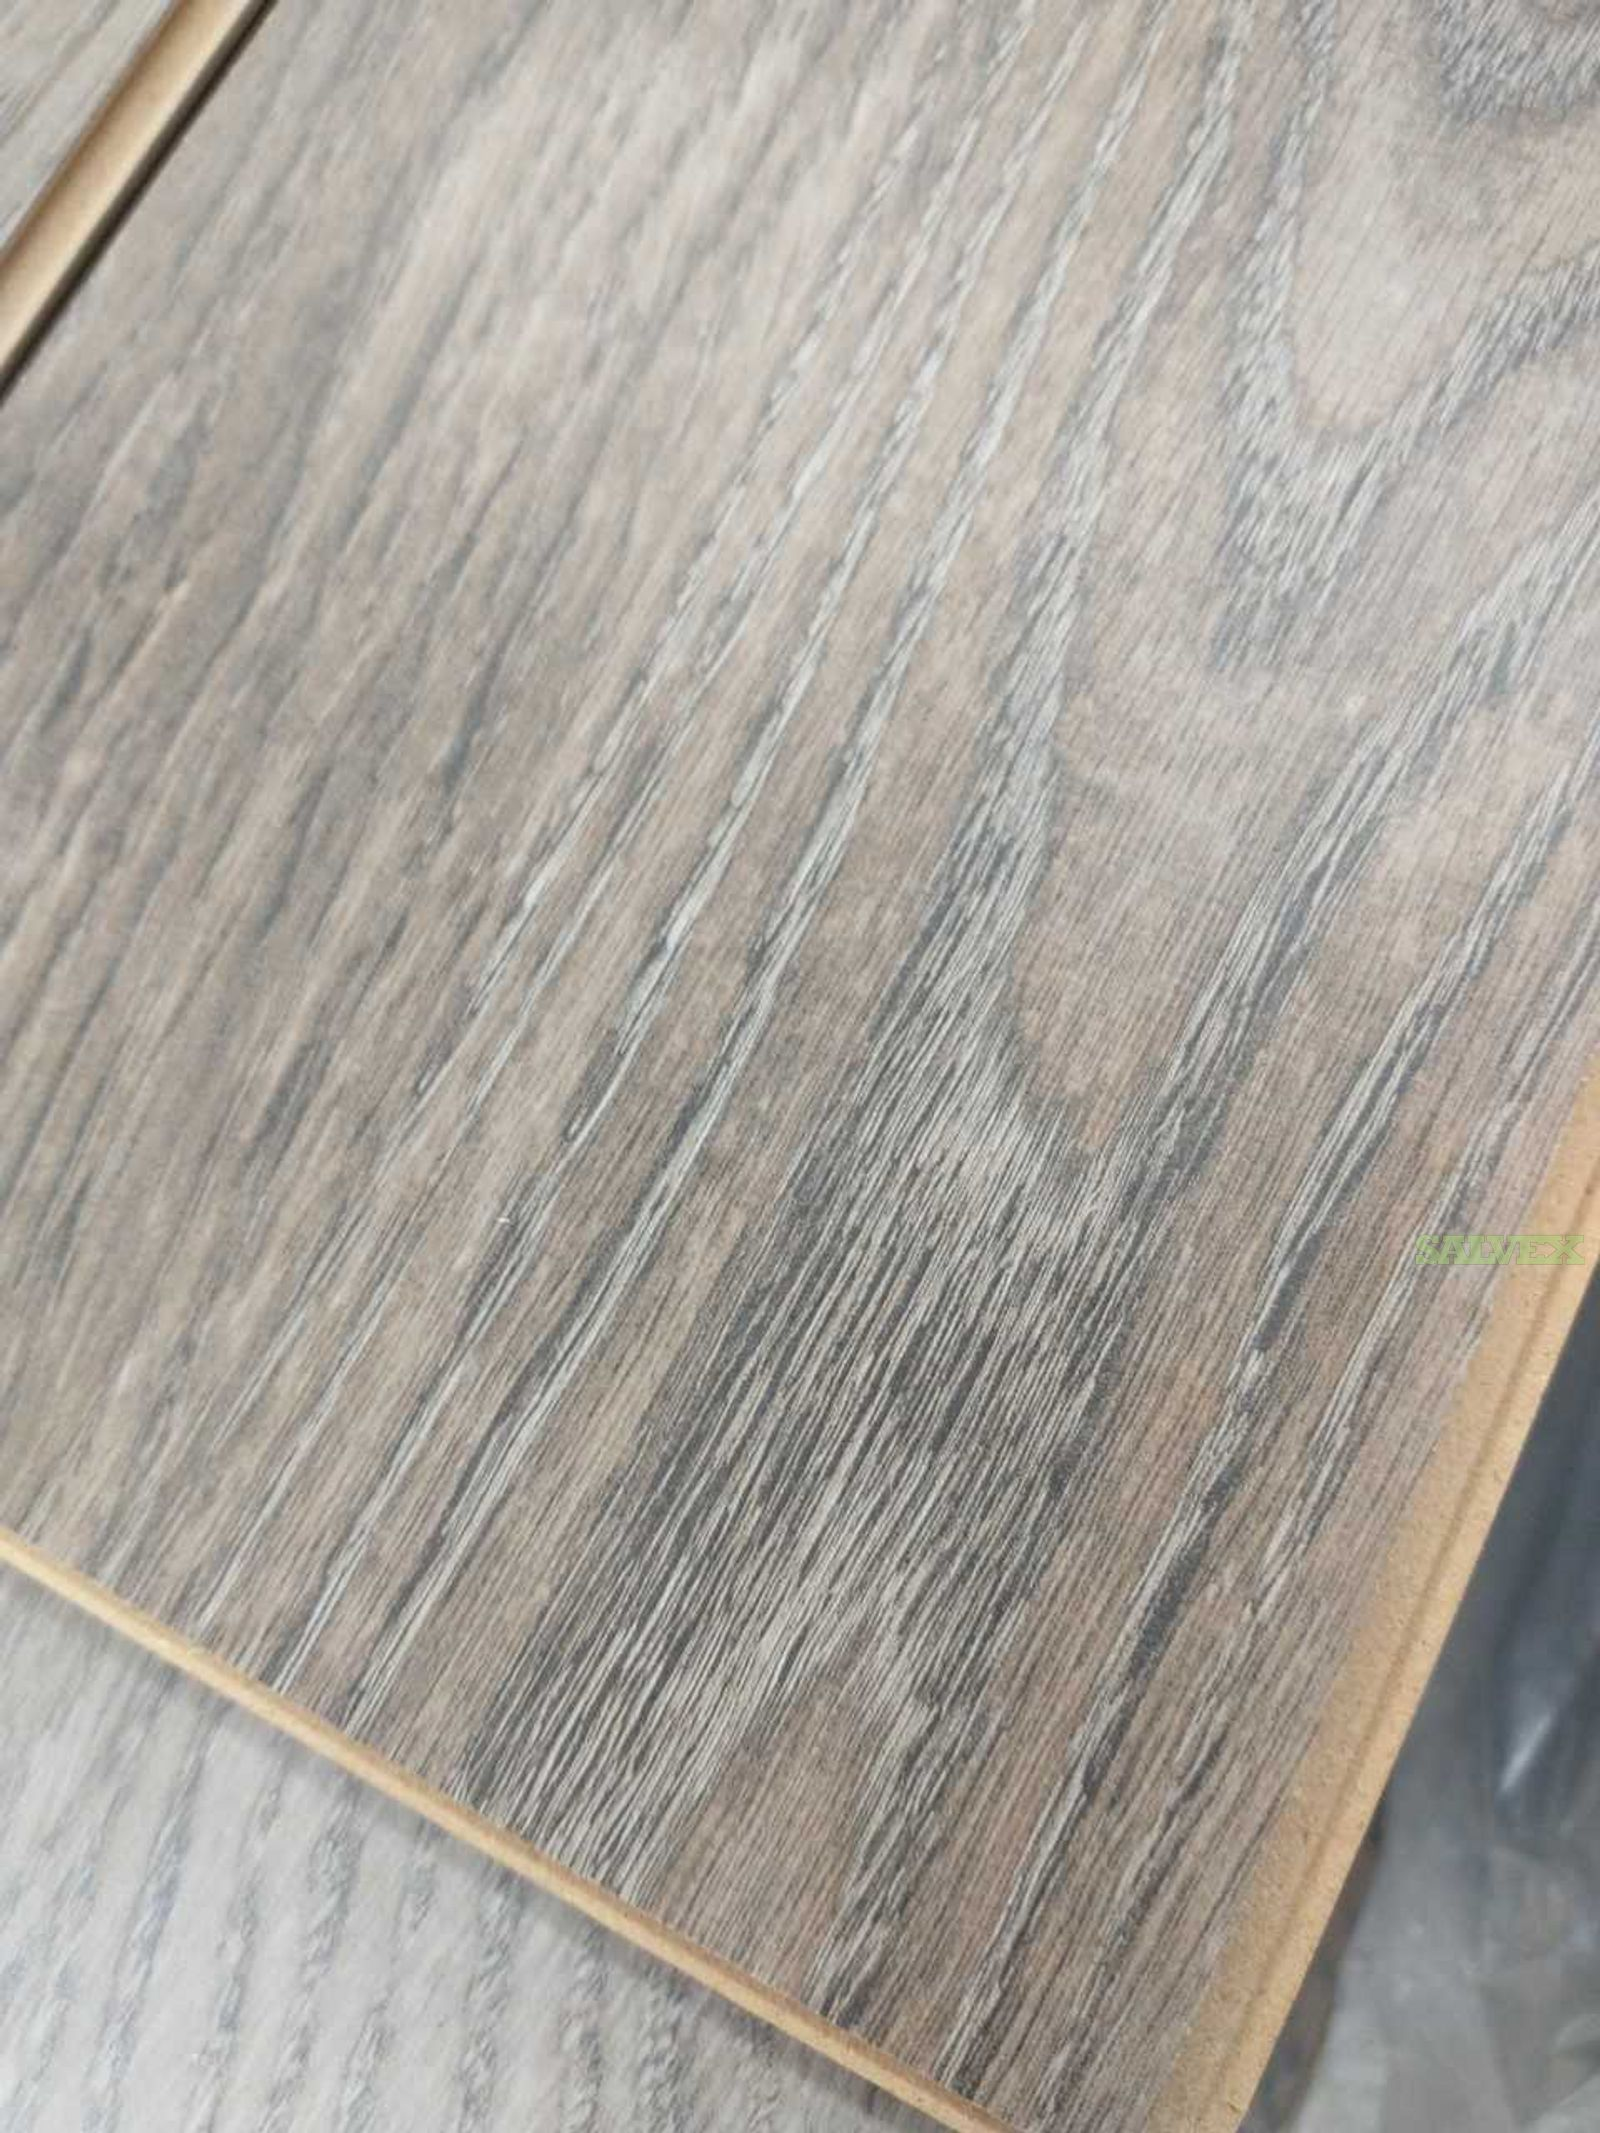 Premier Laminate Flooring First Quality  Water Resistant Special Aged Barnwood